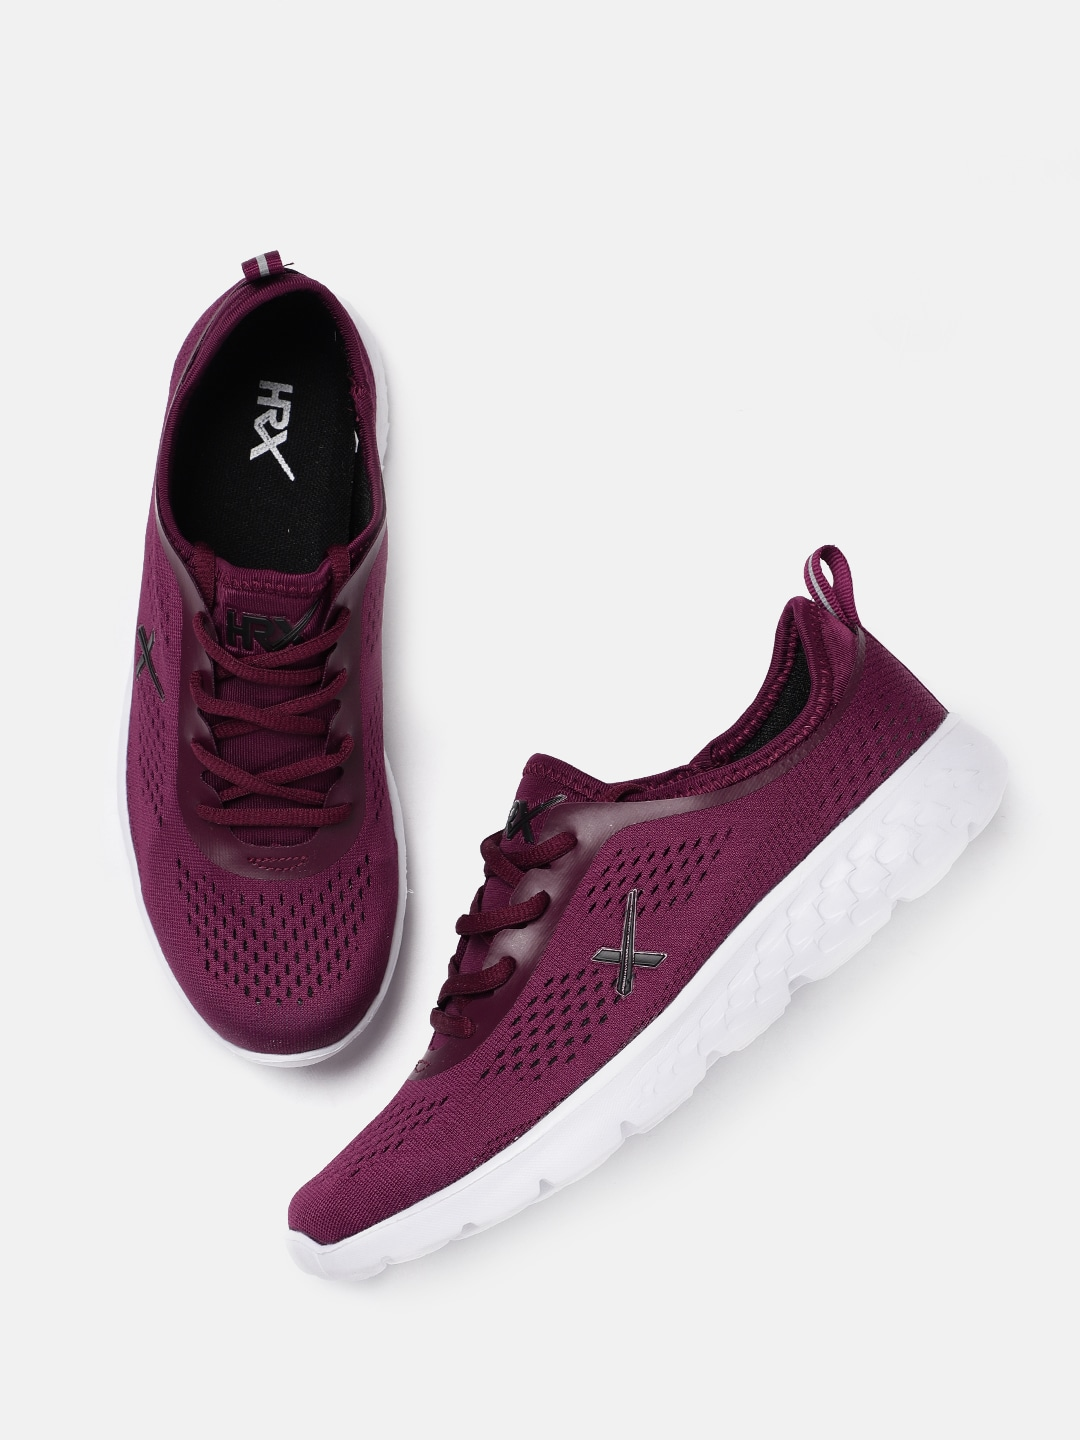 9e9a9fc6366d Sports Shoes for Women - Buy Women Sports Shoes Online